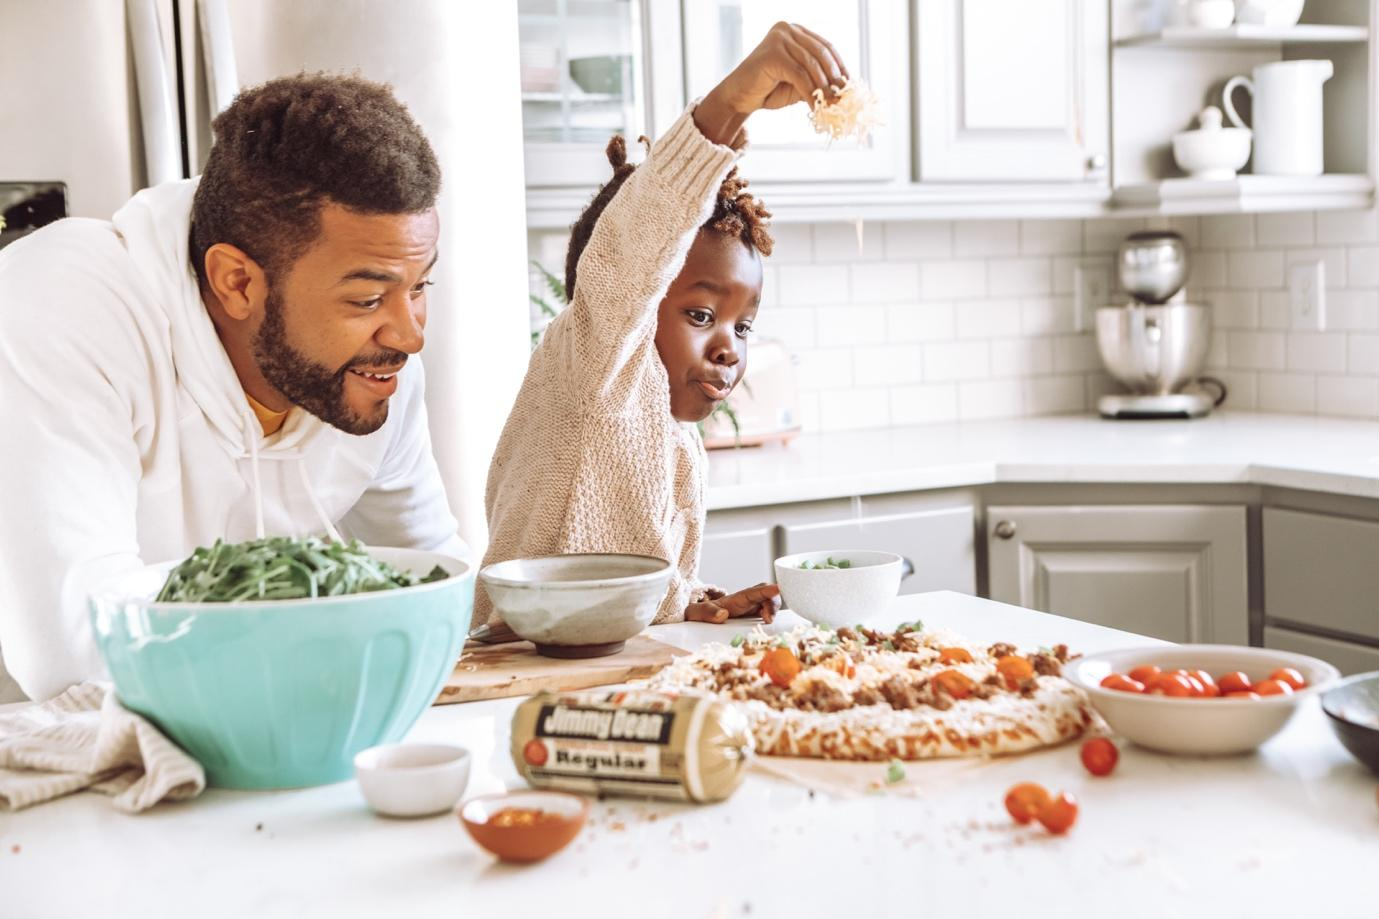 Two people preparing food  Description automatically generated with low confidence